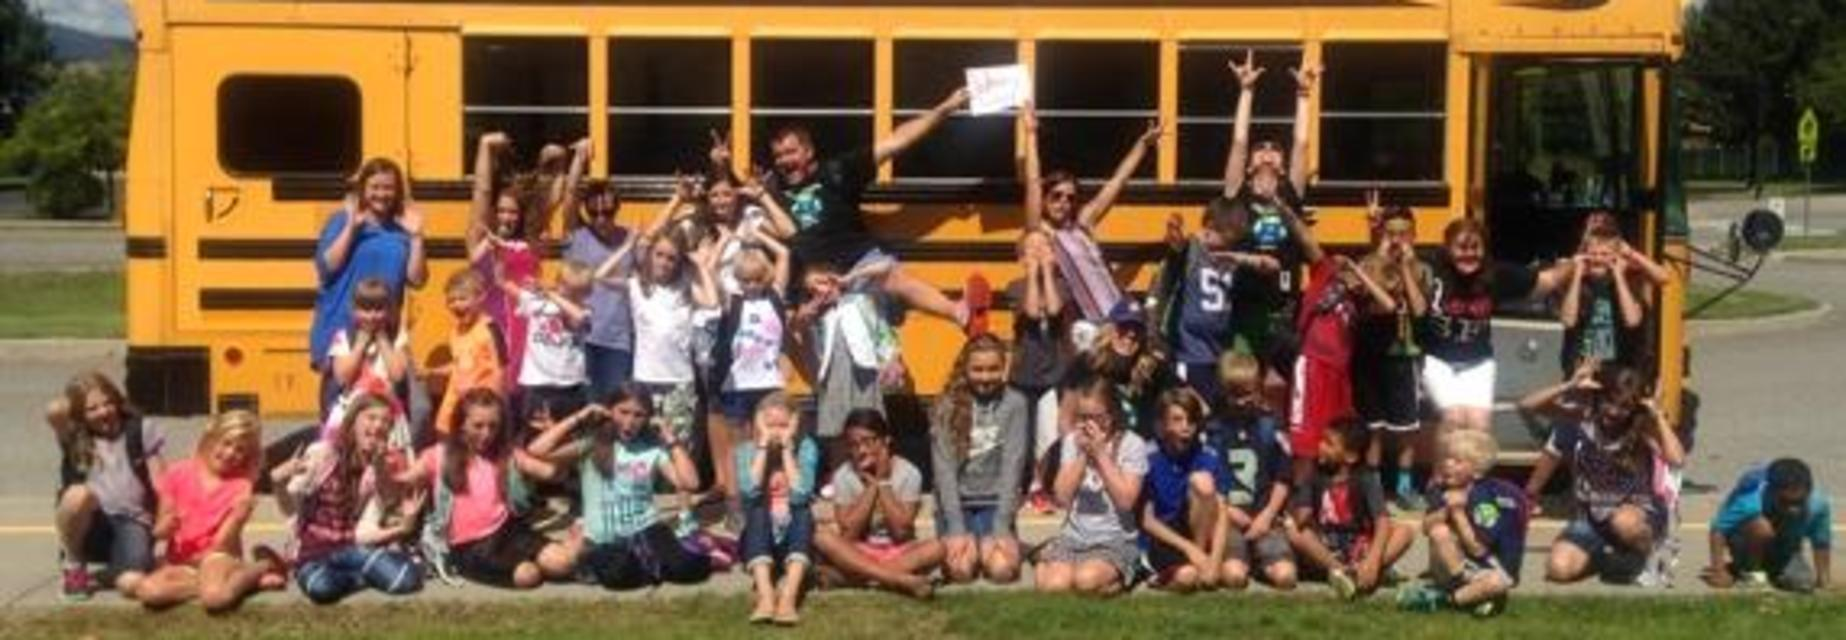 silly students in front of school bus